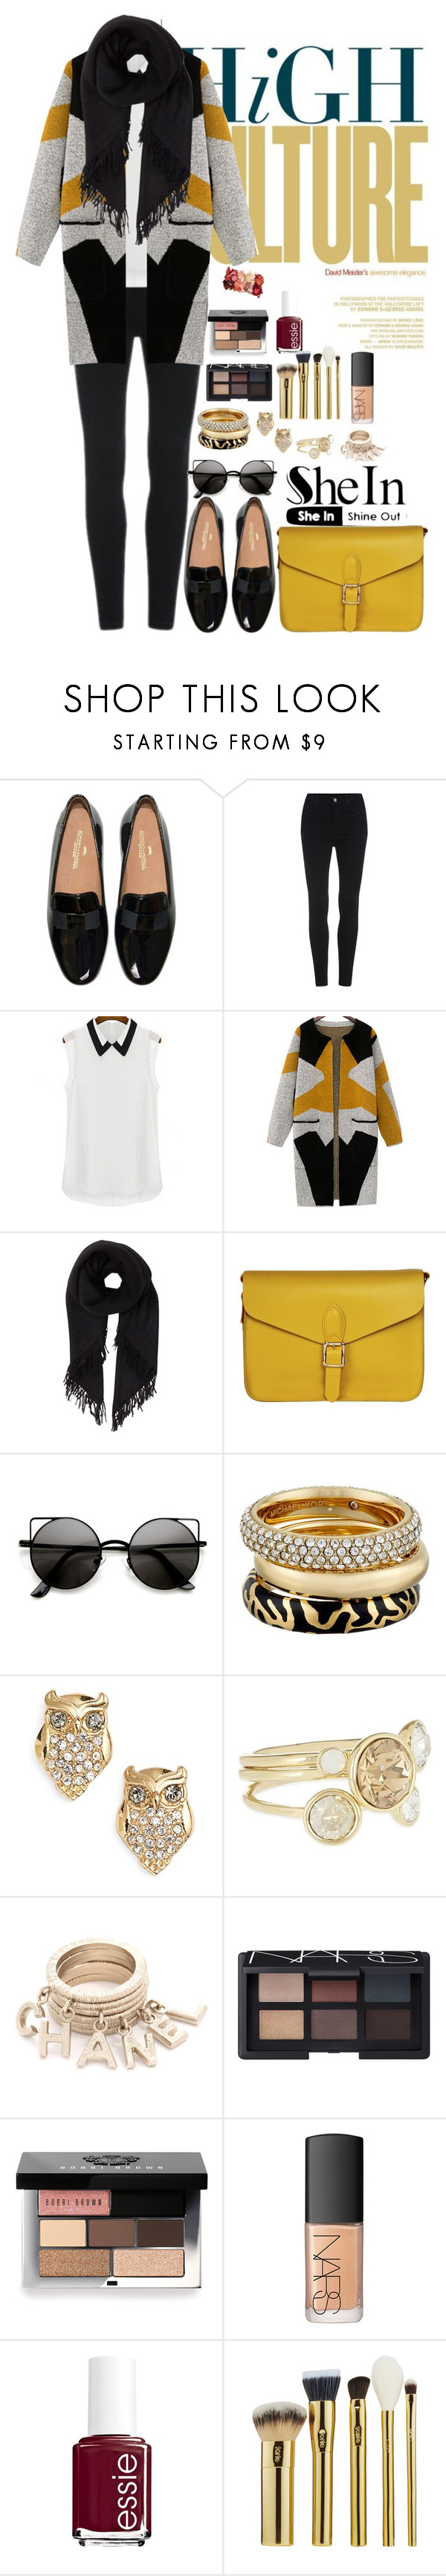 """""""Shein 10."""" by amra-f ❤ liked on Polyvore featuring Isabel Marant, Angela & Roi, Michael Kors, Kate Spade, Ted Baker, NARS Cosmetics, Bobbi Brown Cosmetics, Essie, tarte and Lime Crime"""